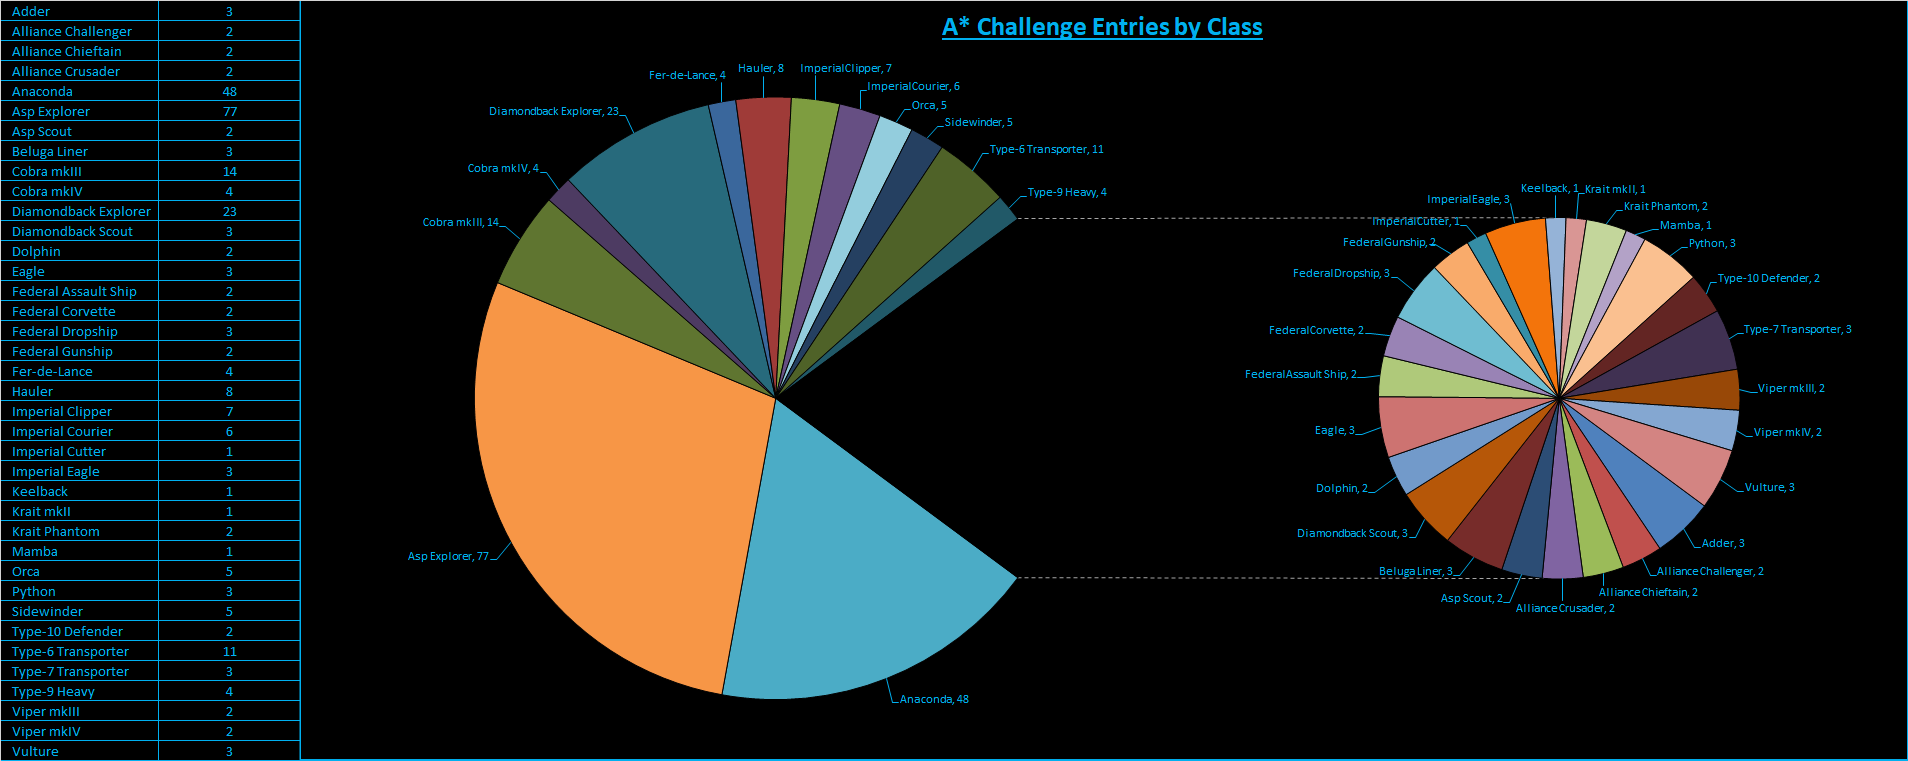 Entries_By_Class.png